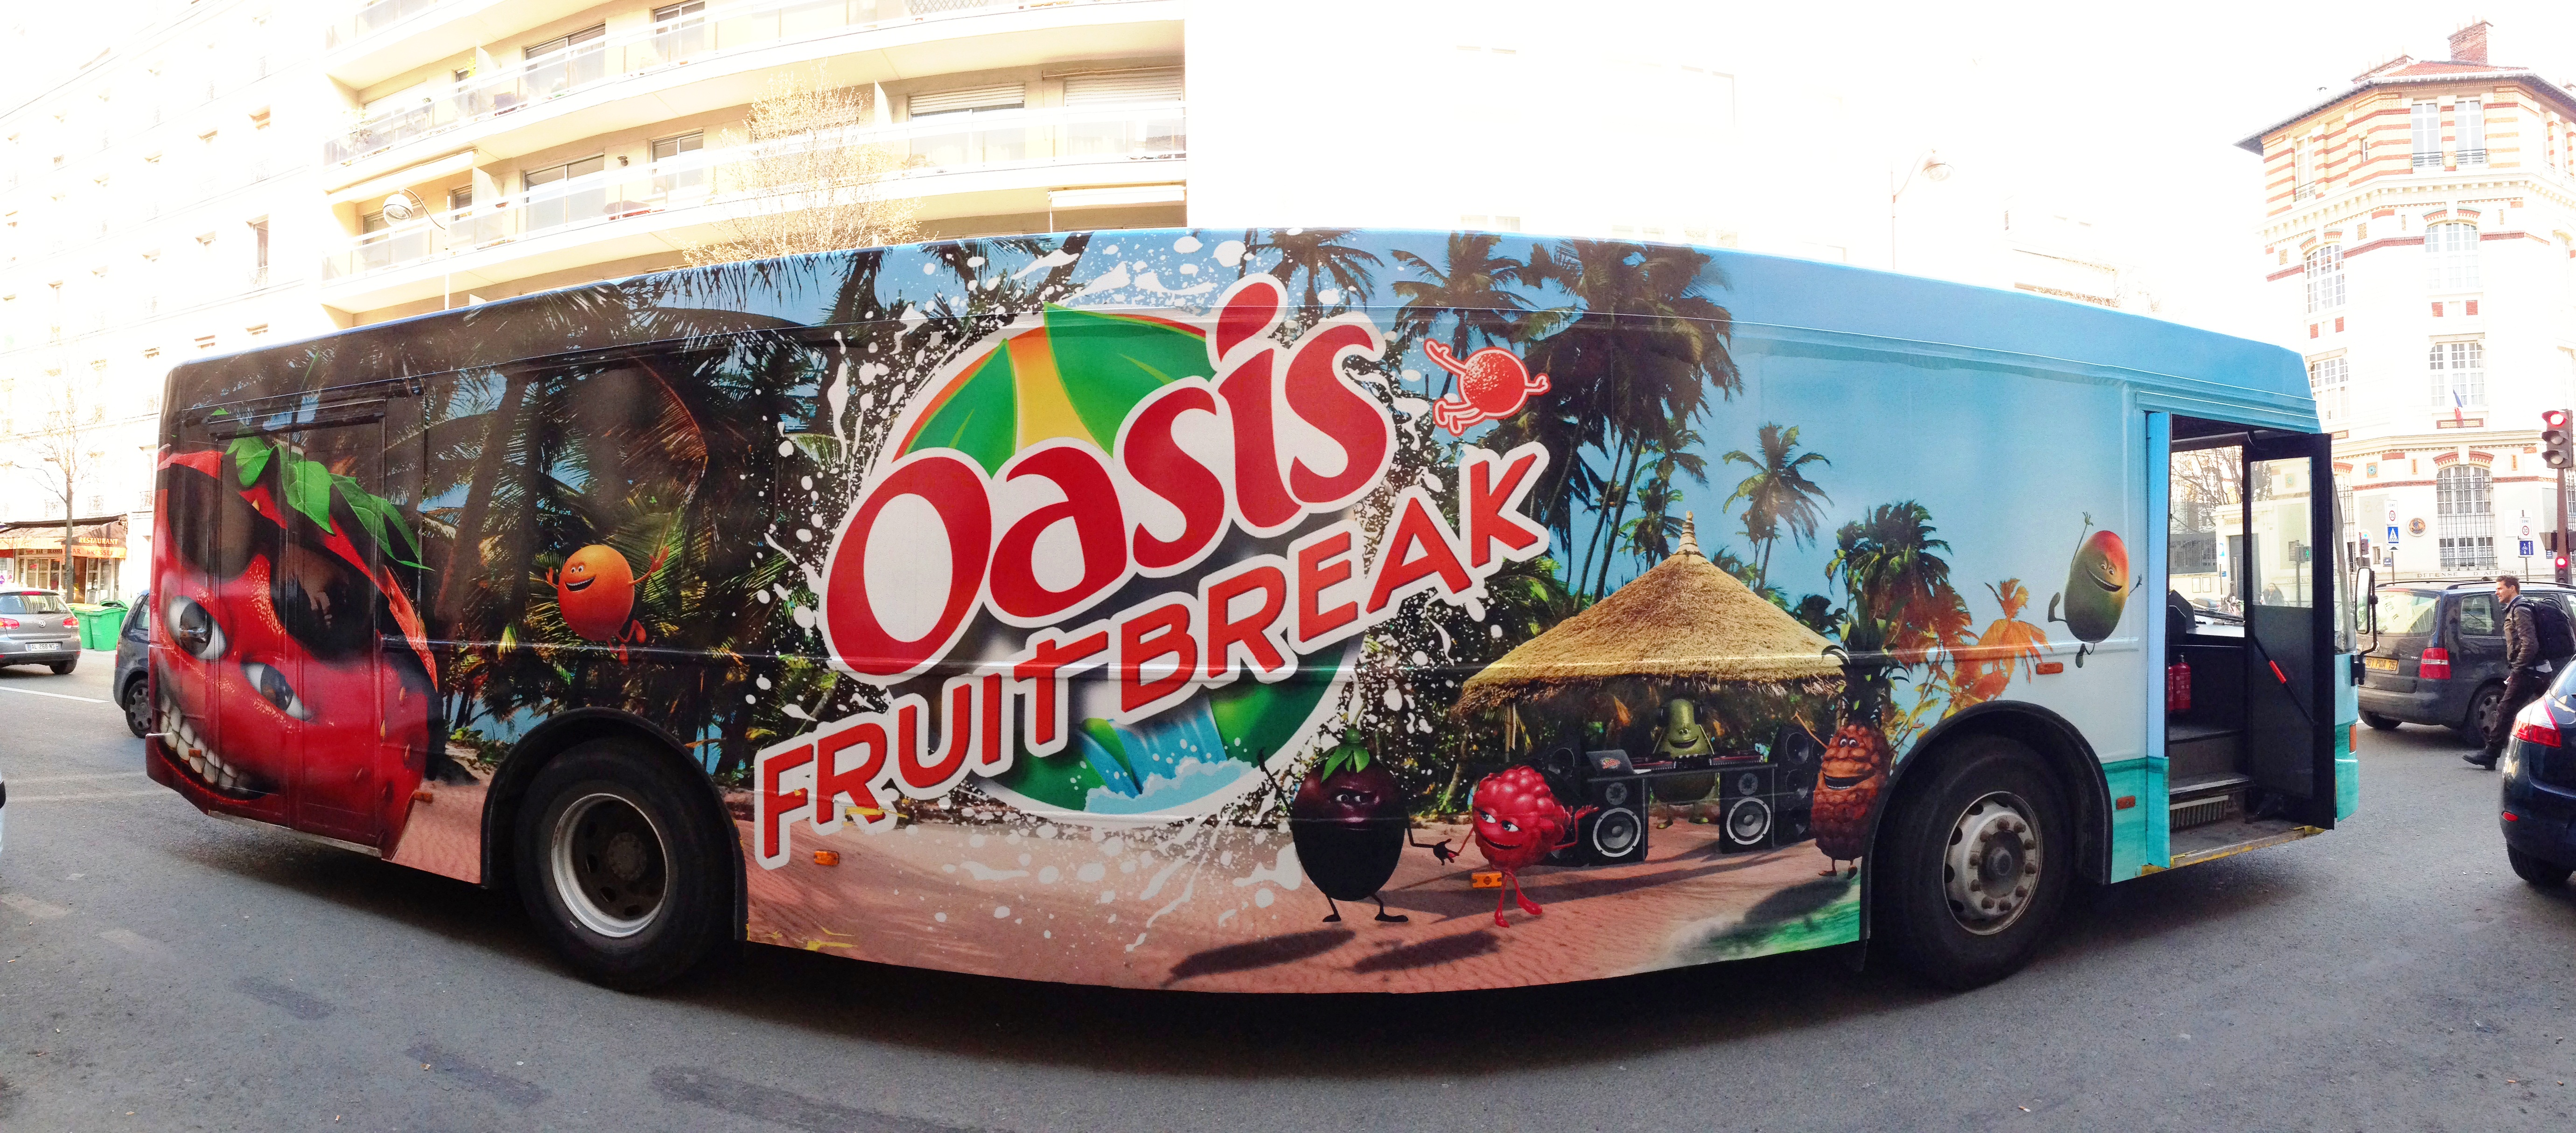 bus oasis fruitbreak